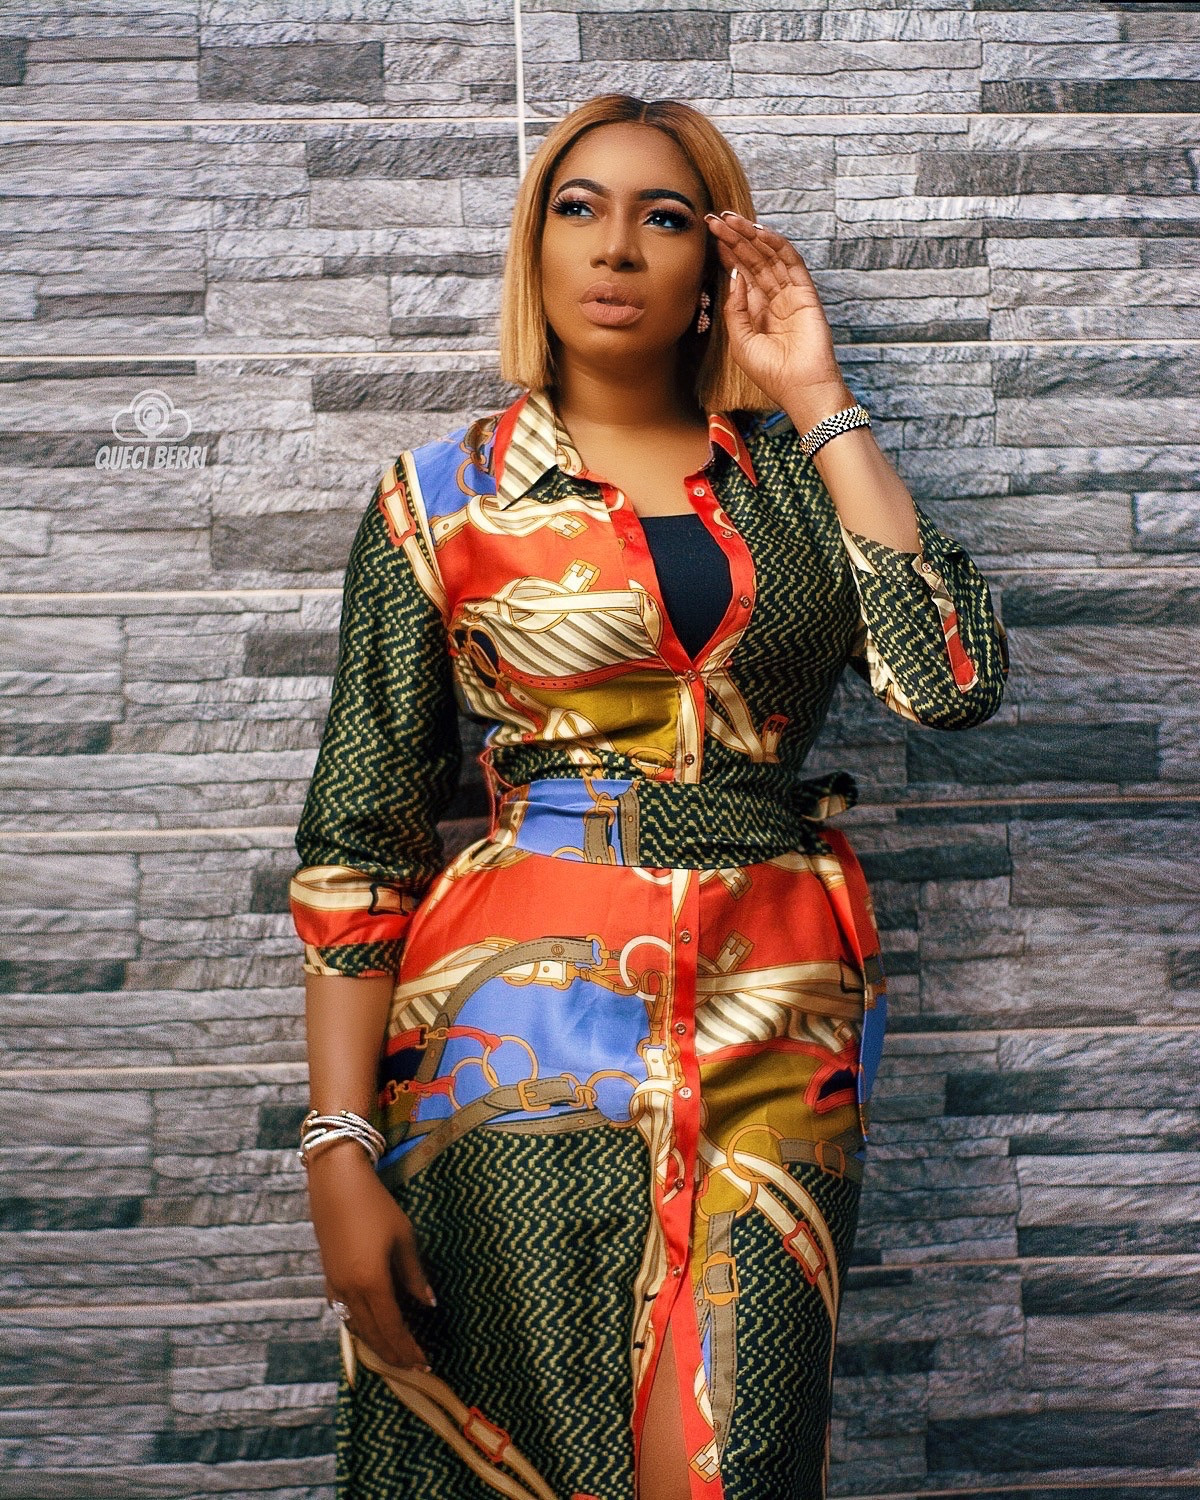 Chika Ike stuns in New photoshoot